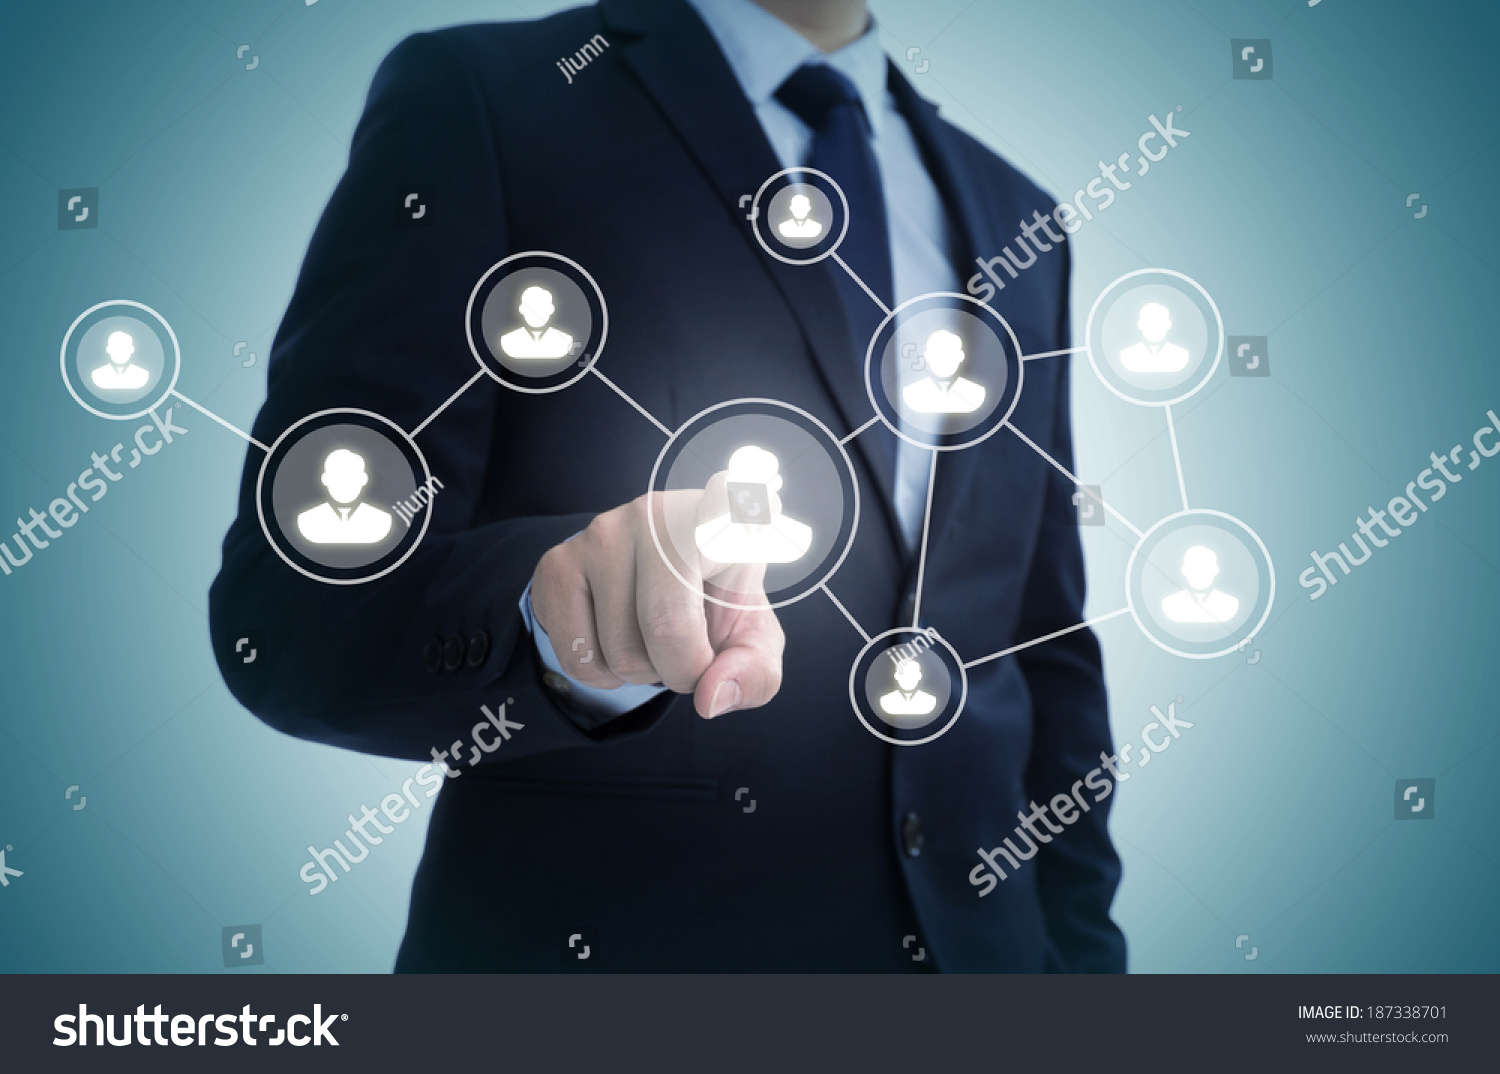 Social Gathering Symbols On Touch Screen Stock Photo Royalty Free